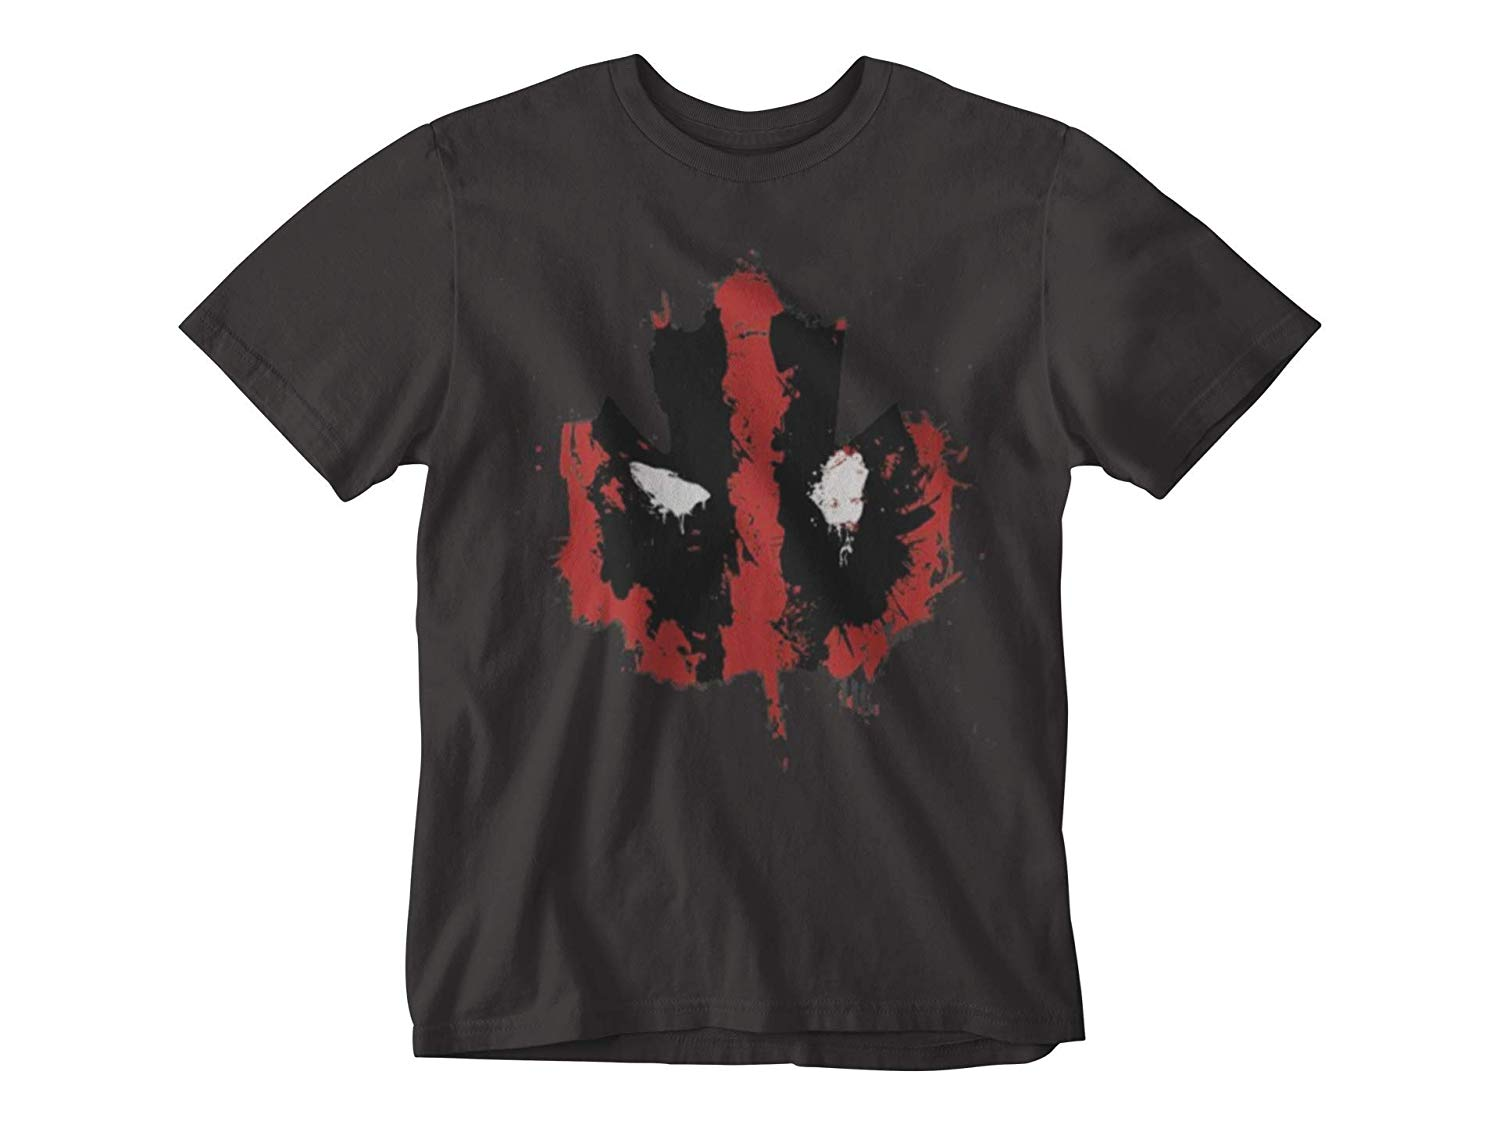 Marvel - Deadpool Canada Day Limited Edition